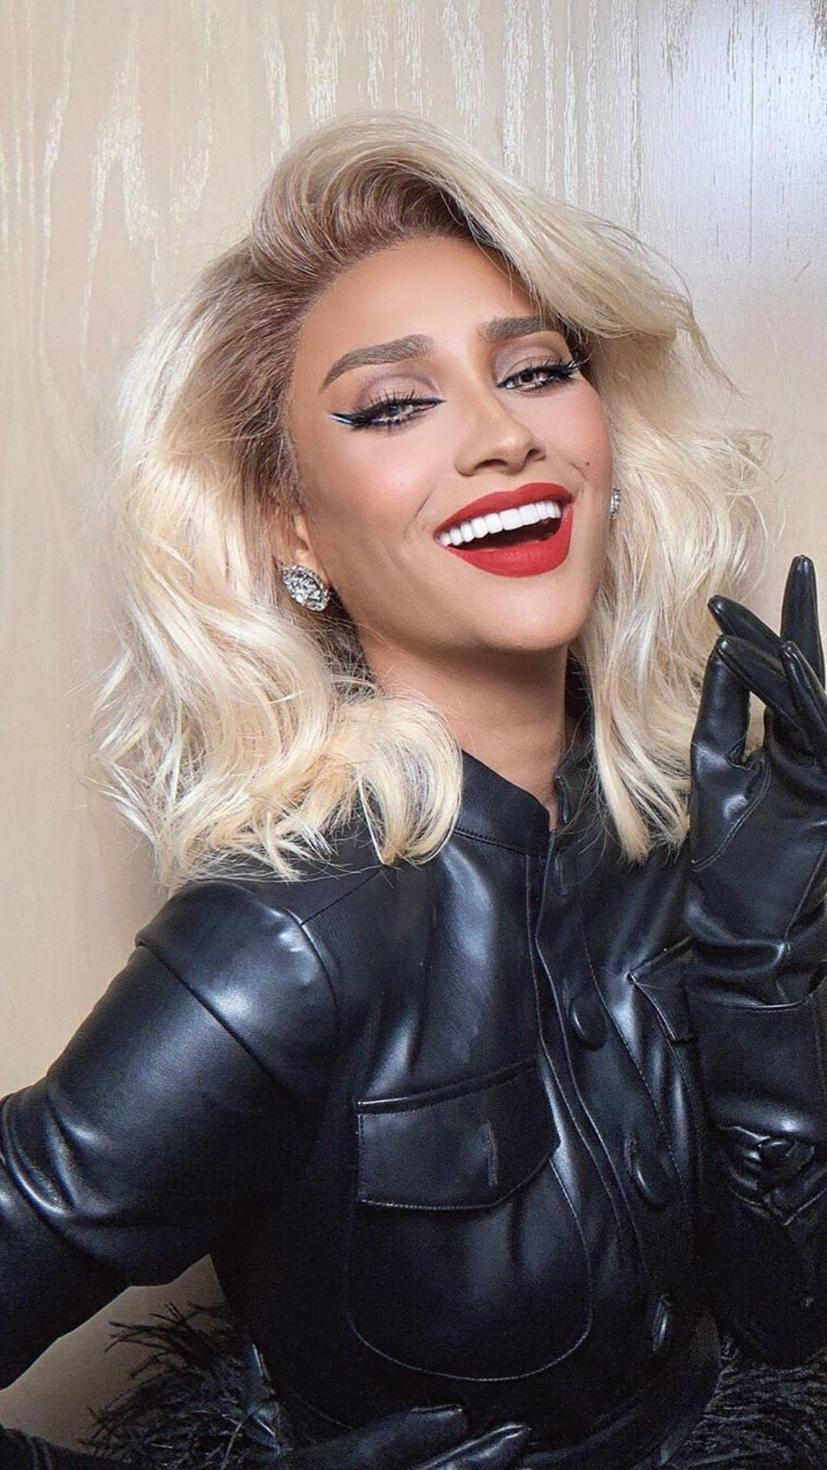 "Blonde hair and black leather - the perfect combo! In the words of T-Swift, she's got ""that red-lipped, classic thing"" that we like! Eyeliner? Check. Bold lashes? Check. Beautiful smile? Check!"